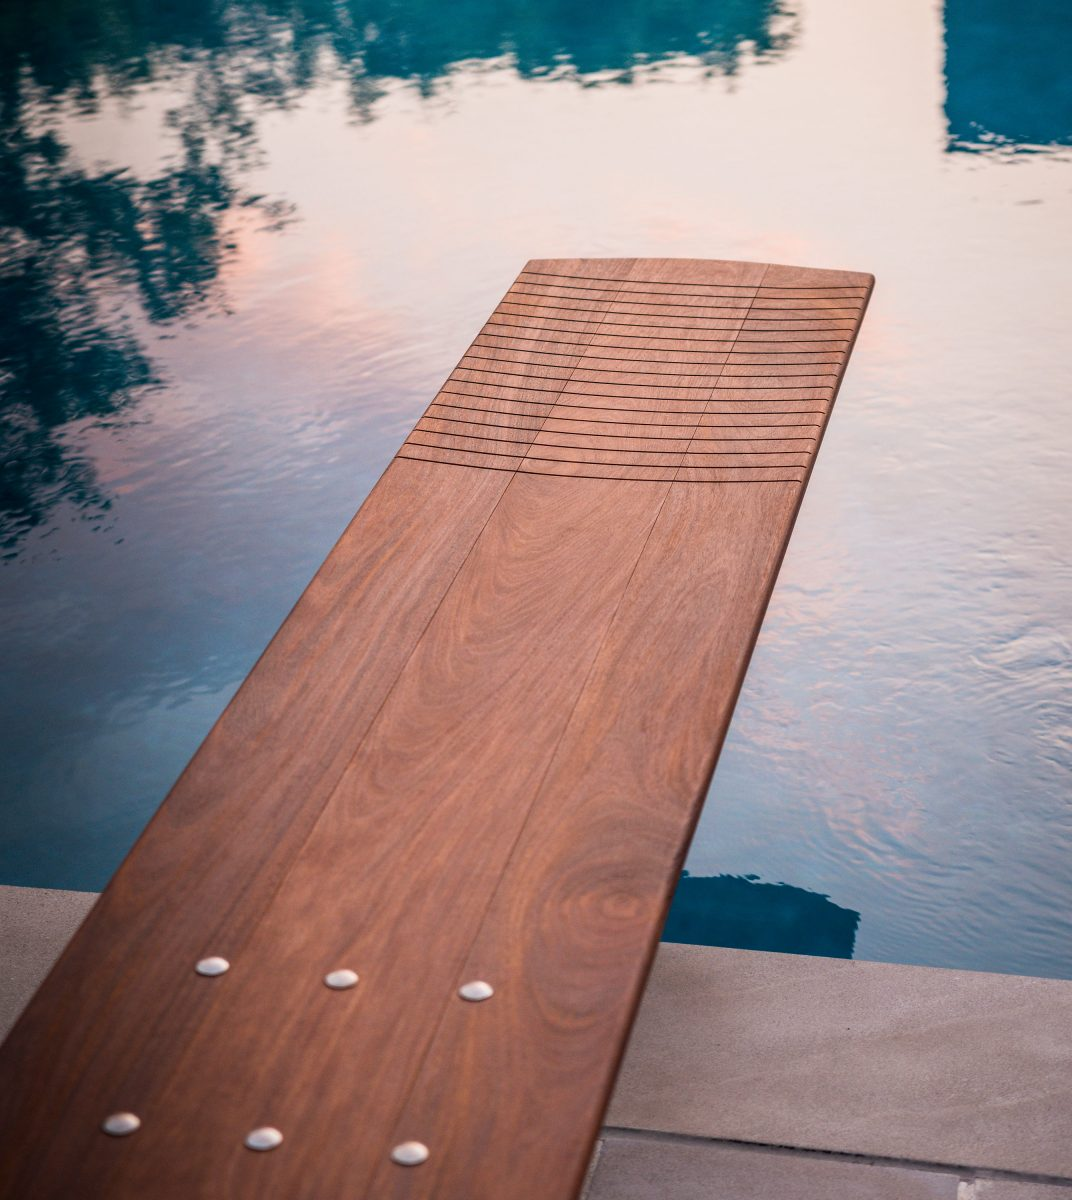 Custom blegian diving board made by Mikel Tube for Alan and Heather Looney in Nashville, TN